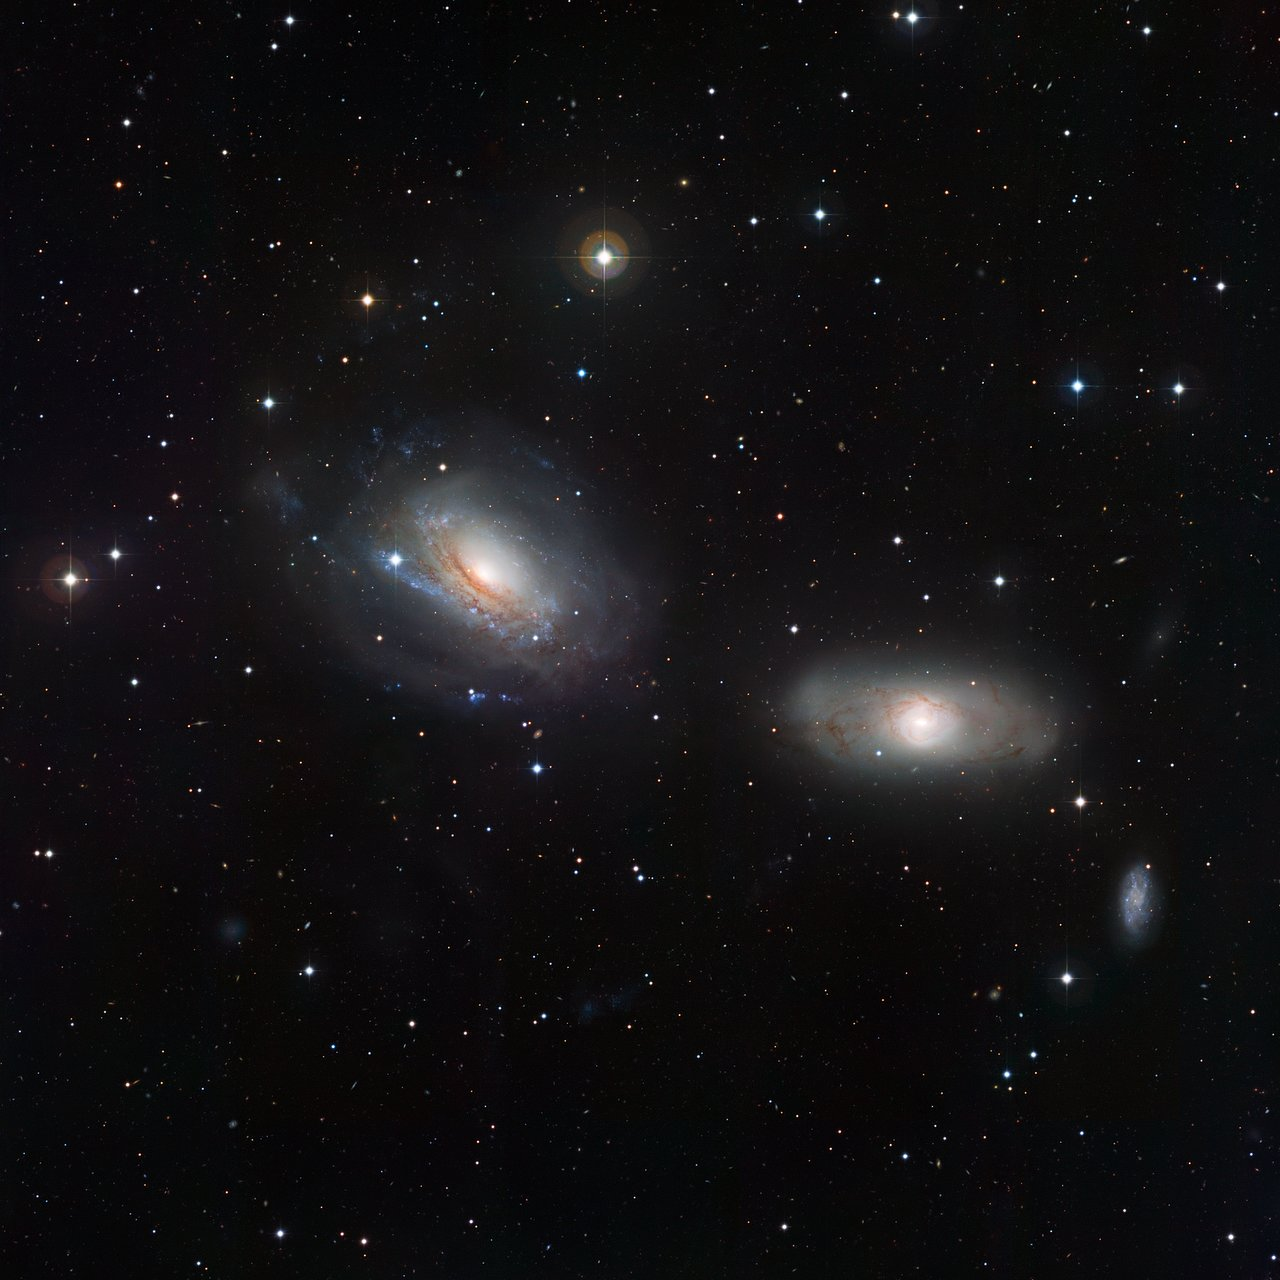 The disturbed galactic duo NGC 3169 and NGC 3166